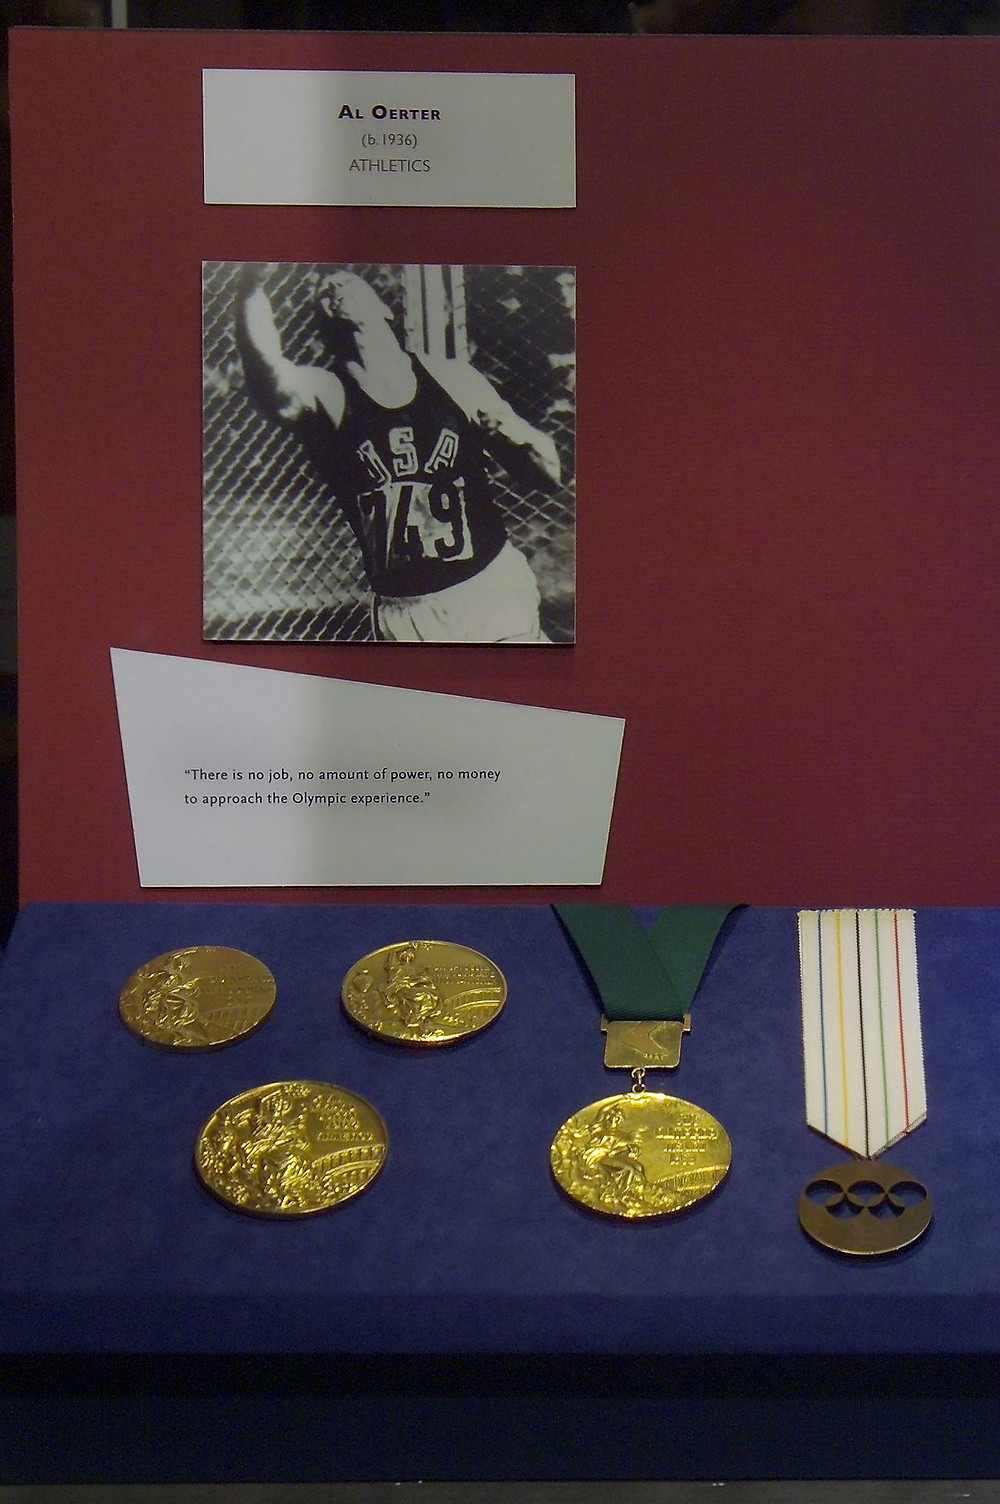 Al Oerter's Reforged Gold Medal with Green Ribbon